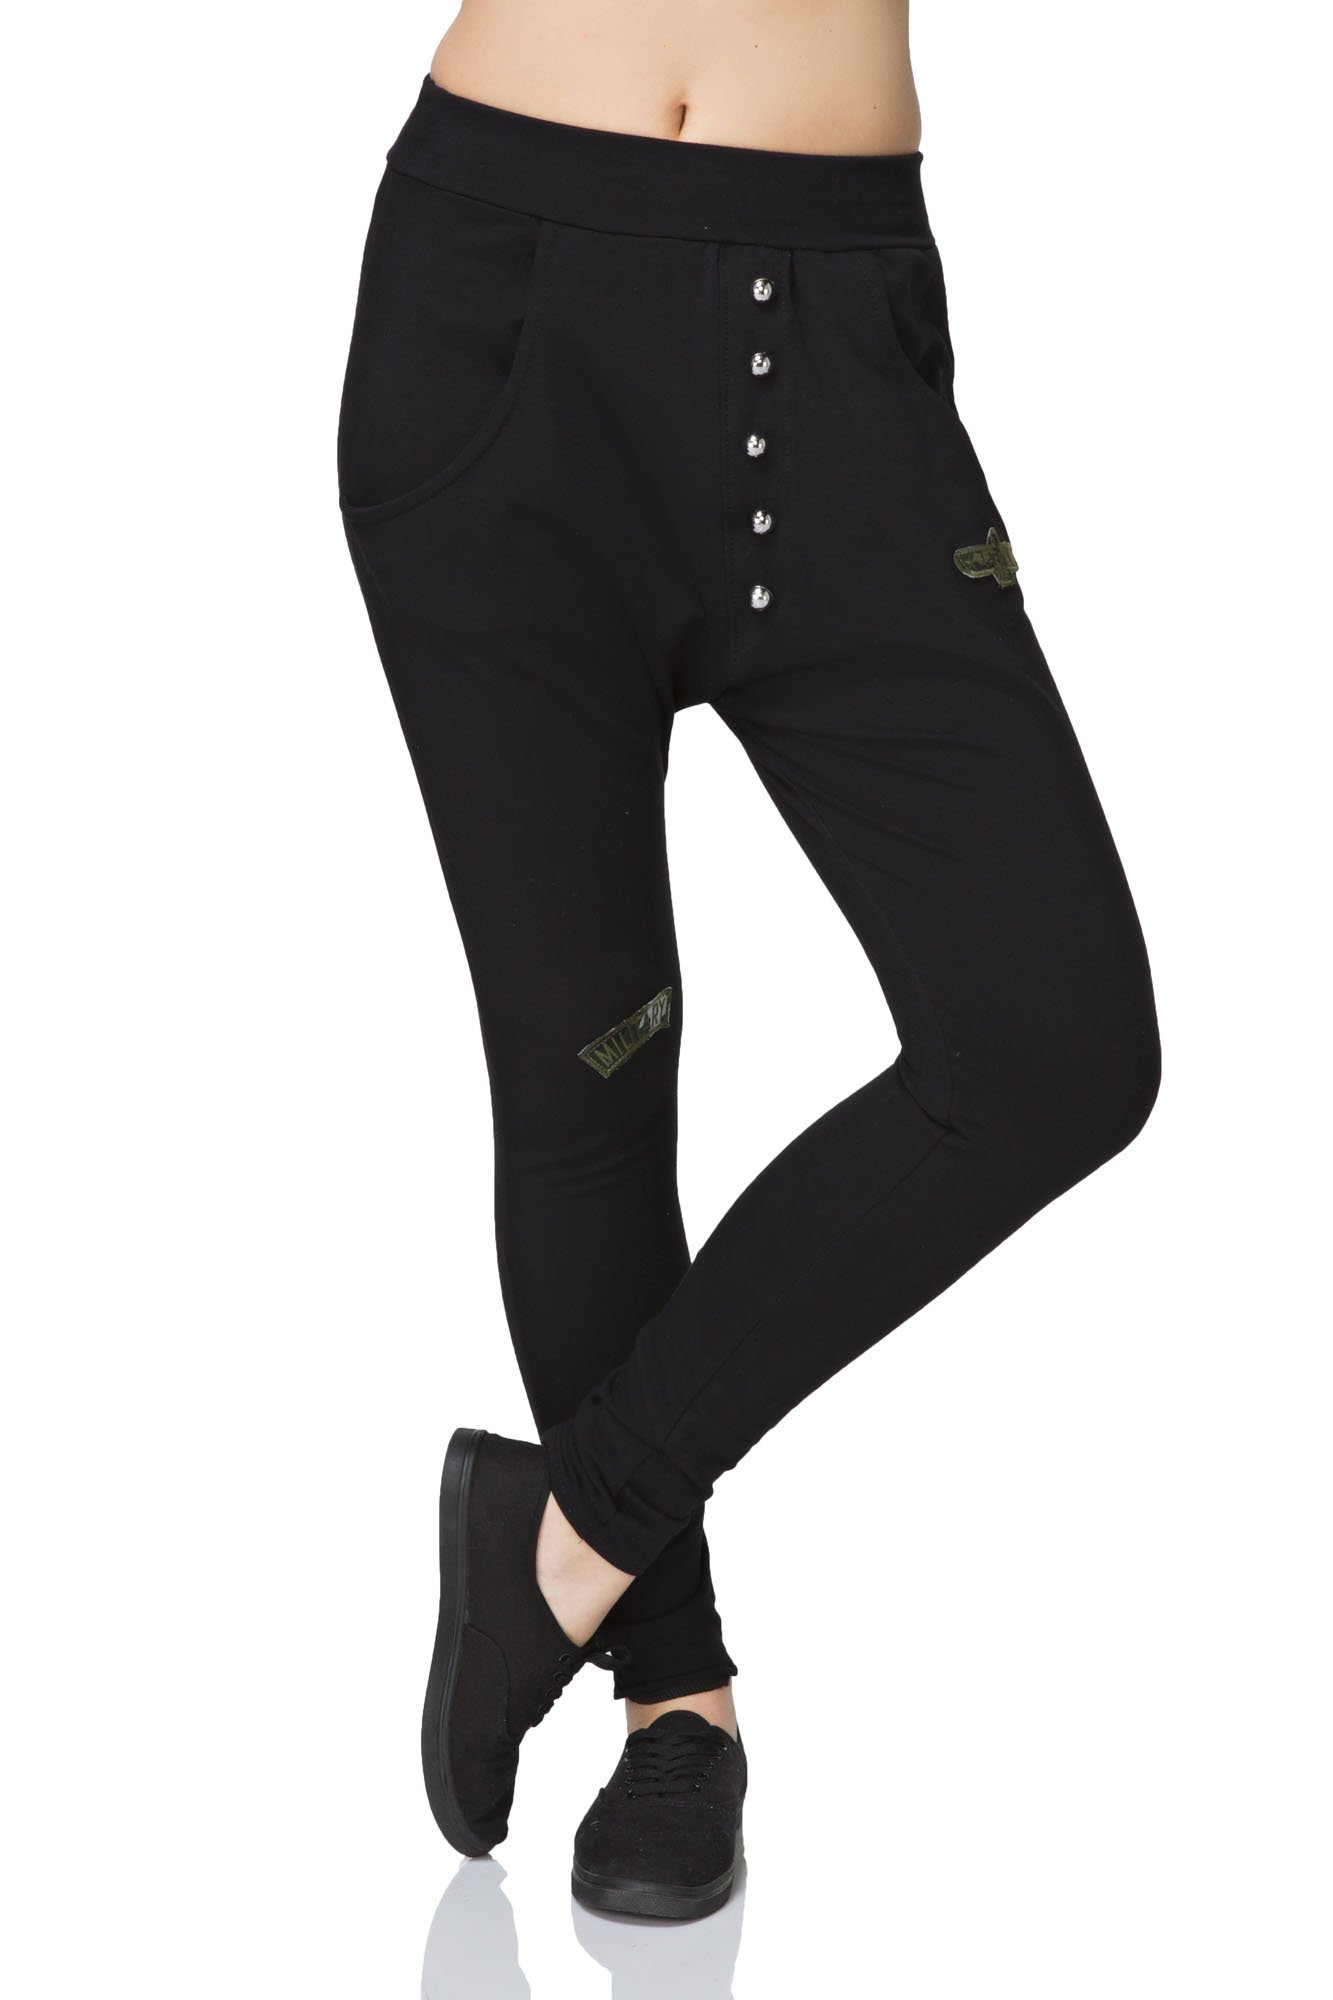 UK Casual Tapered Pants With Pockets Skinny Trousers Bottoms Sizes 8-14 FT2146